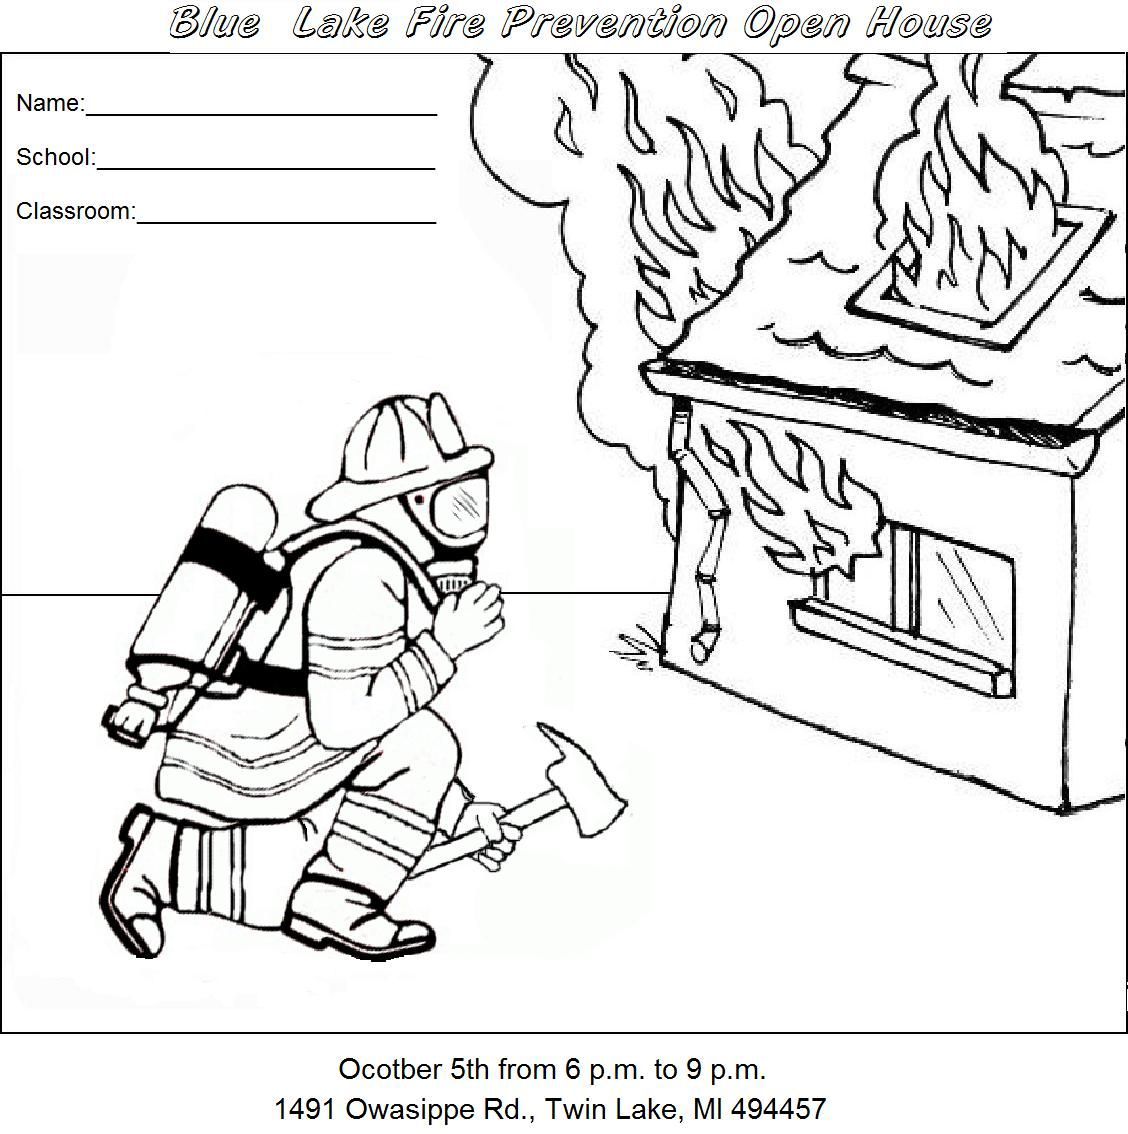 Clip Art Fire Safety Printable Coloring Pages fire safety printable coloring pages eassume com book page az pages